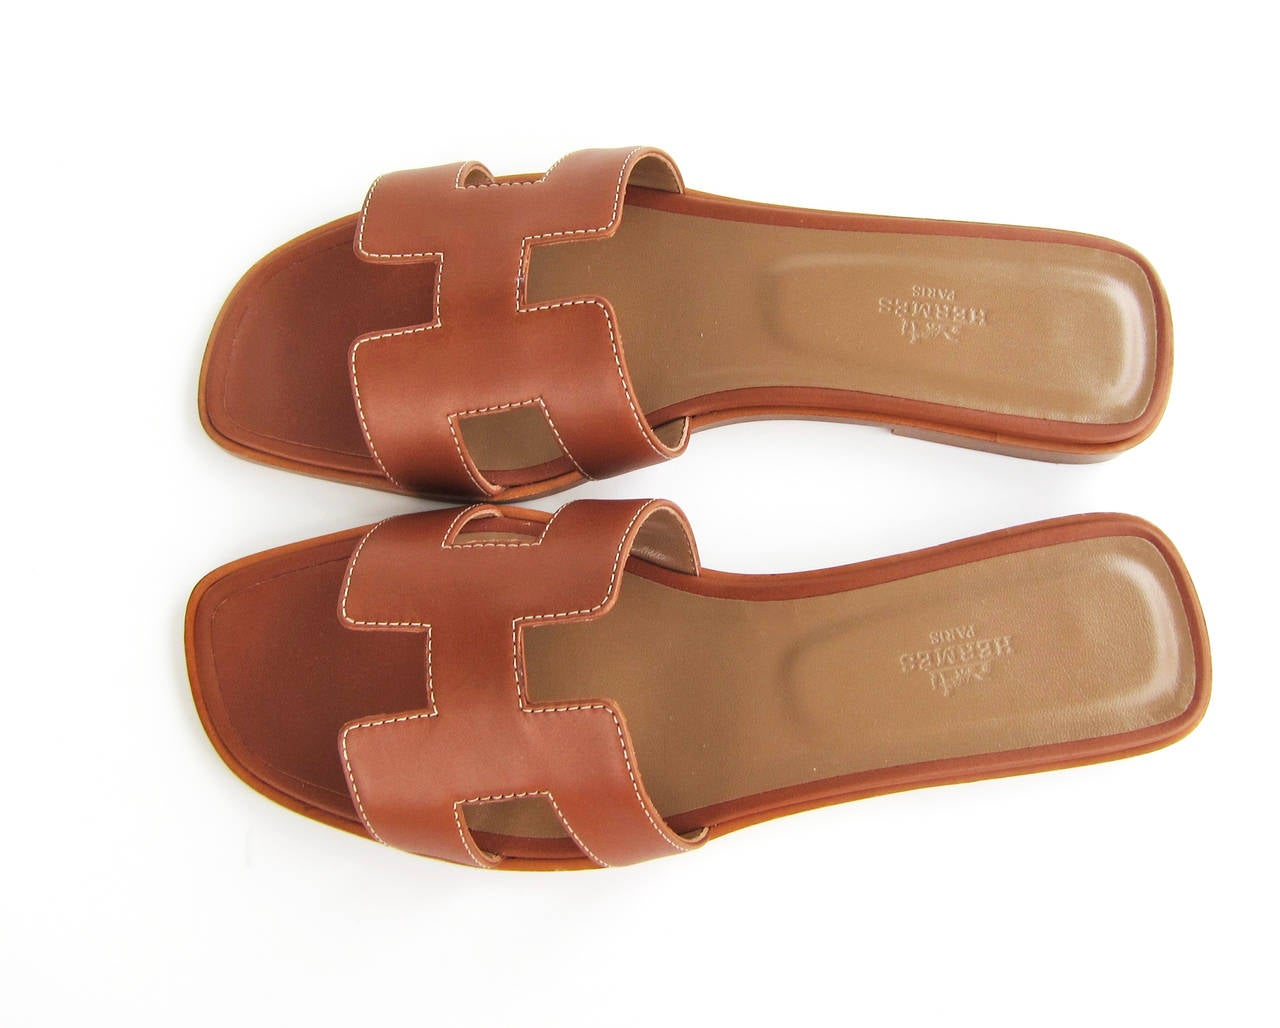 Hermes Gold Oran Box Leather Sandals Size 40 Summer 2